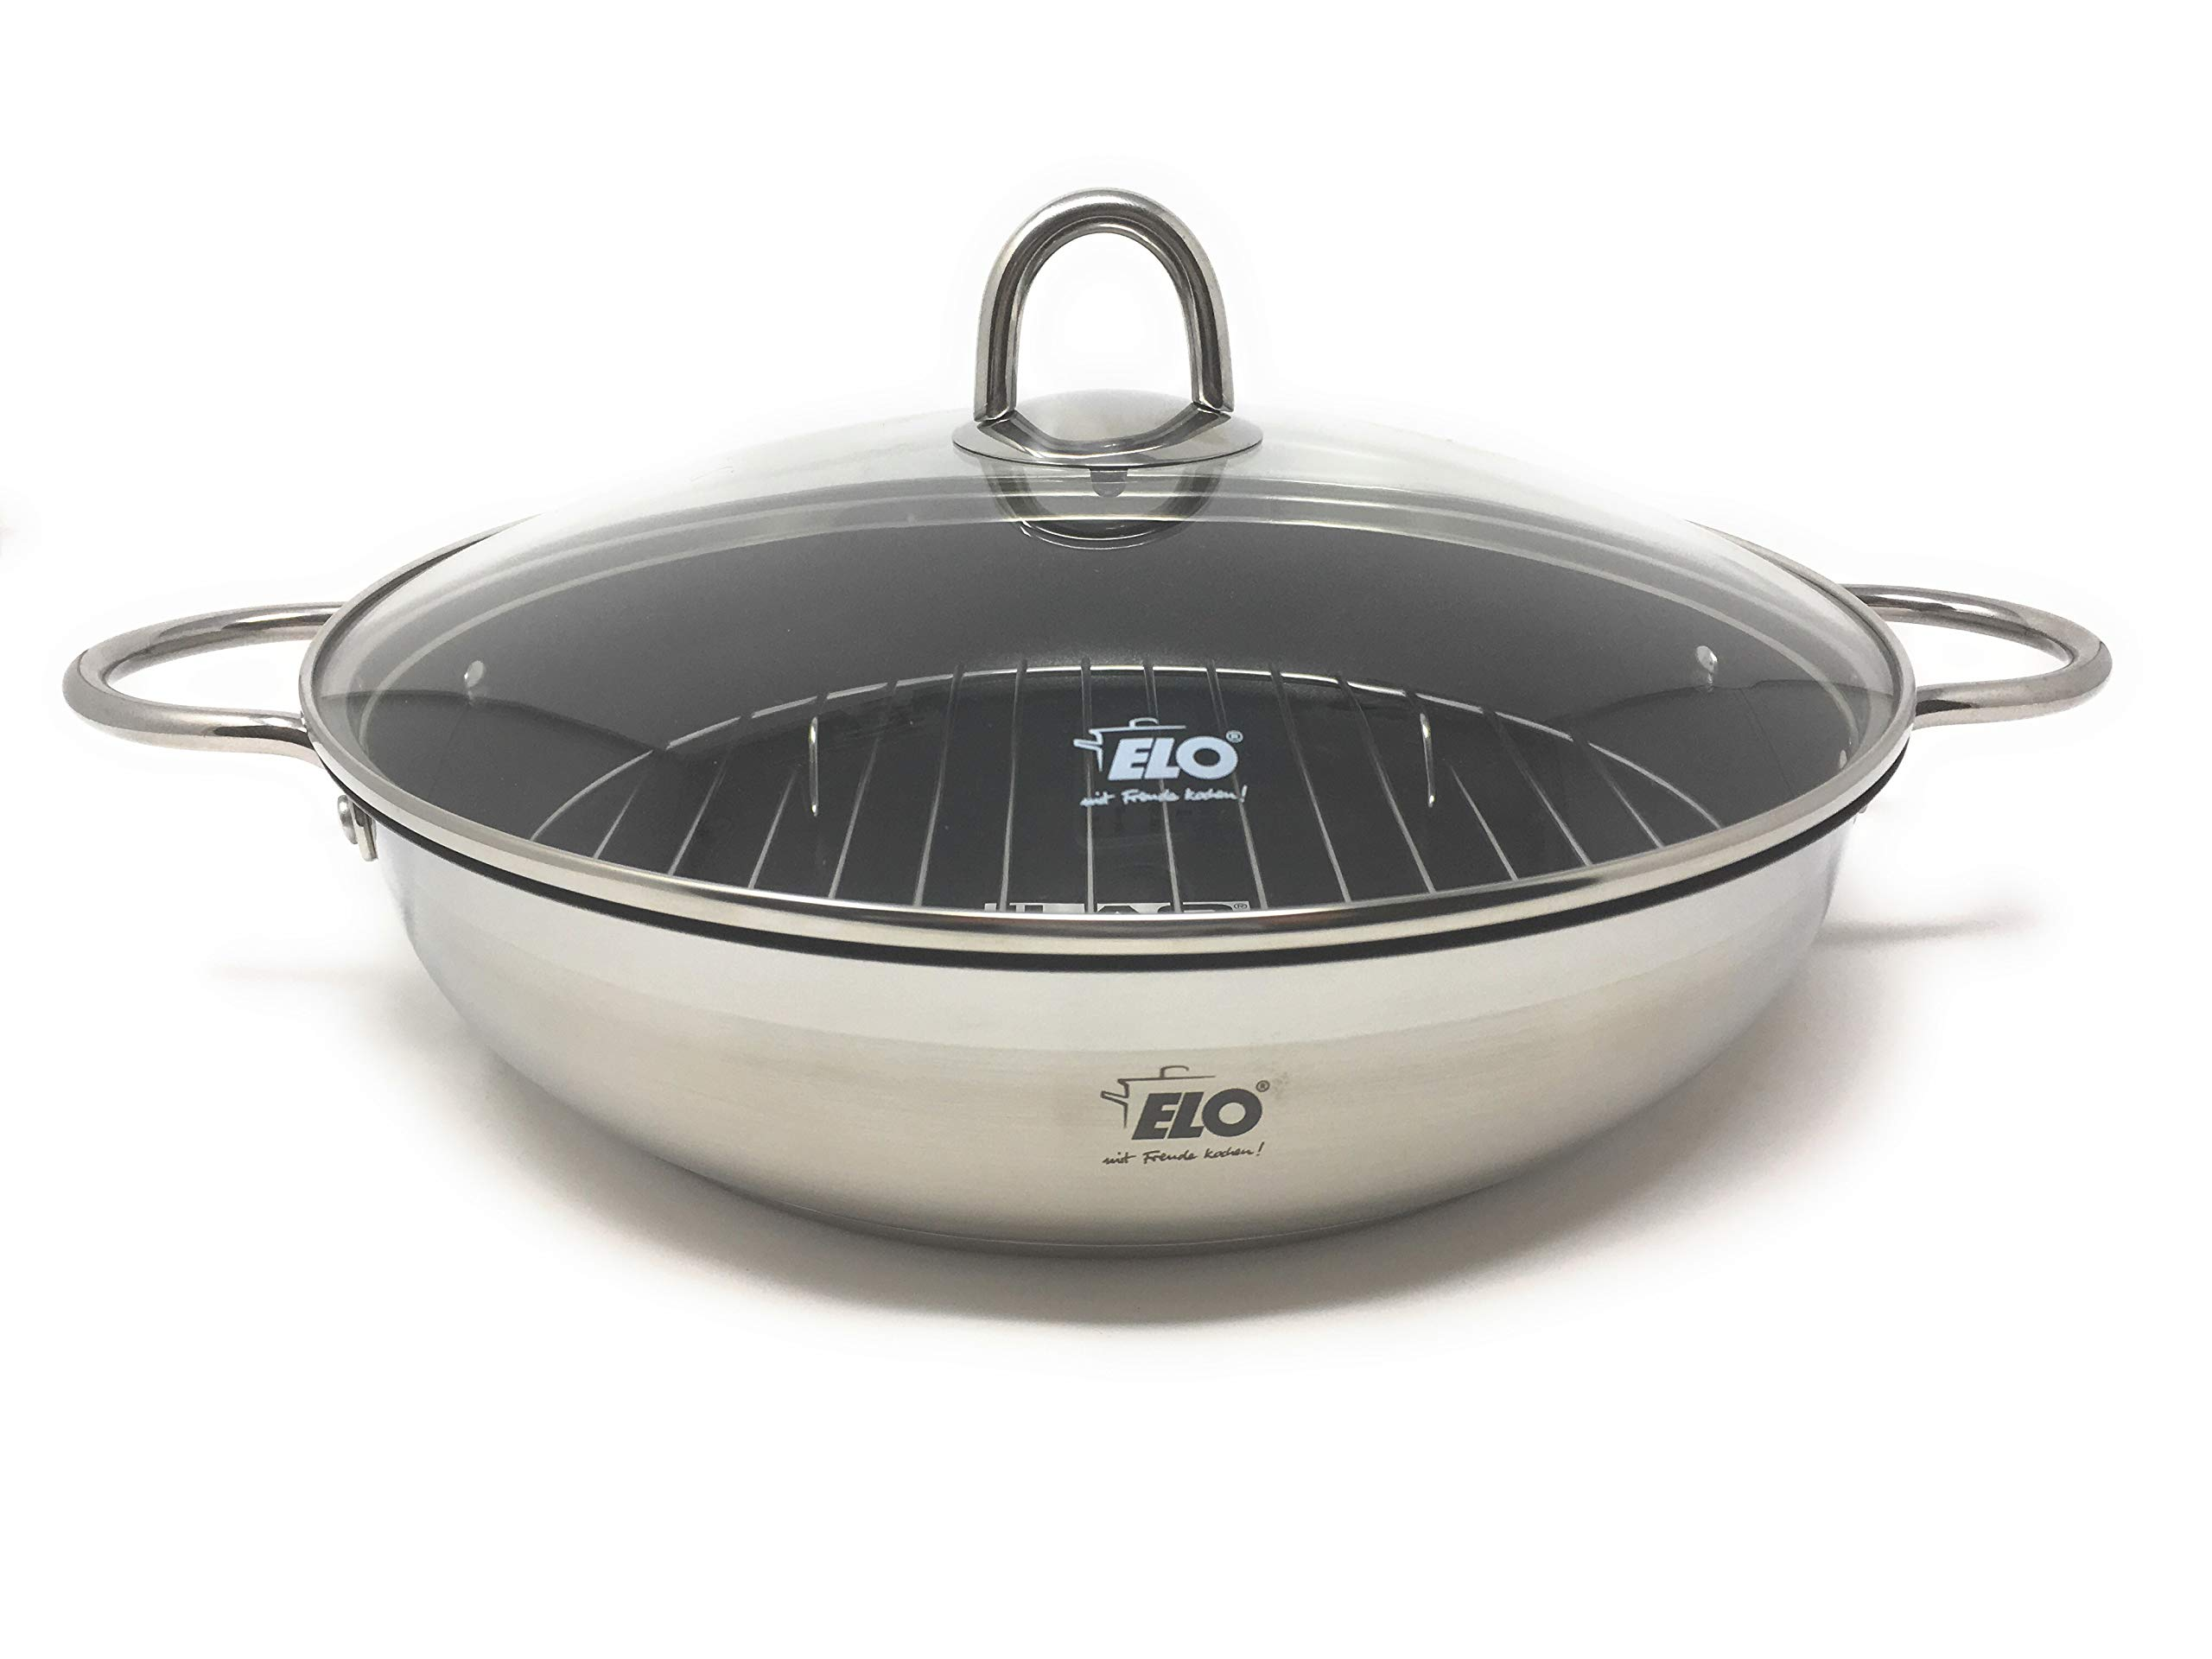 ELO Germany Platin Stainless Steel Induction Roasting Pan with Grill Insert